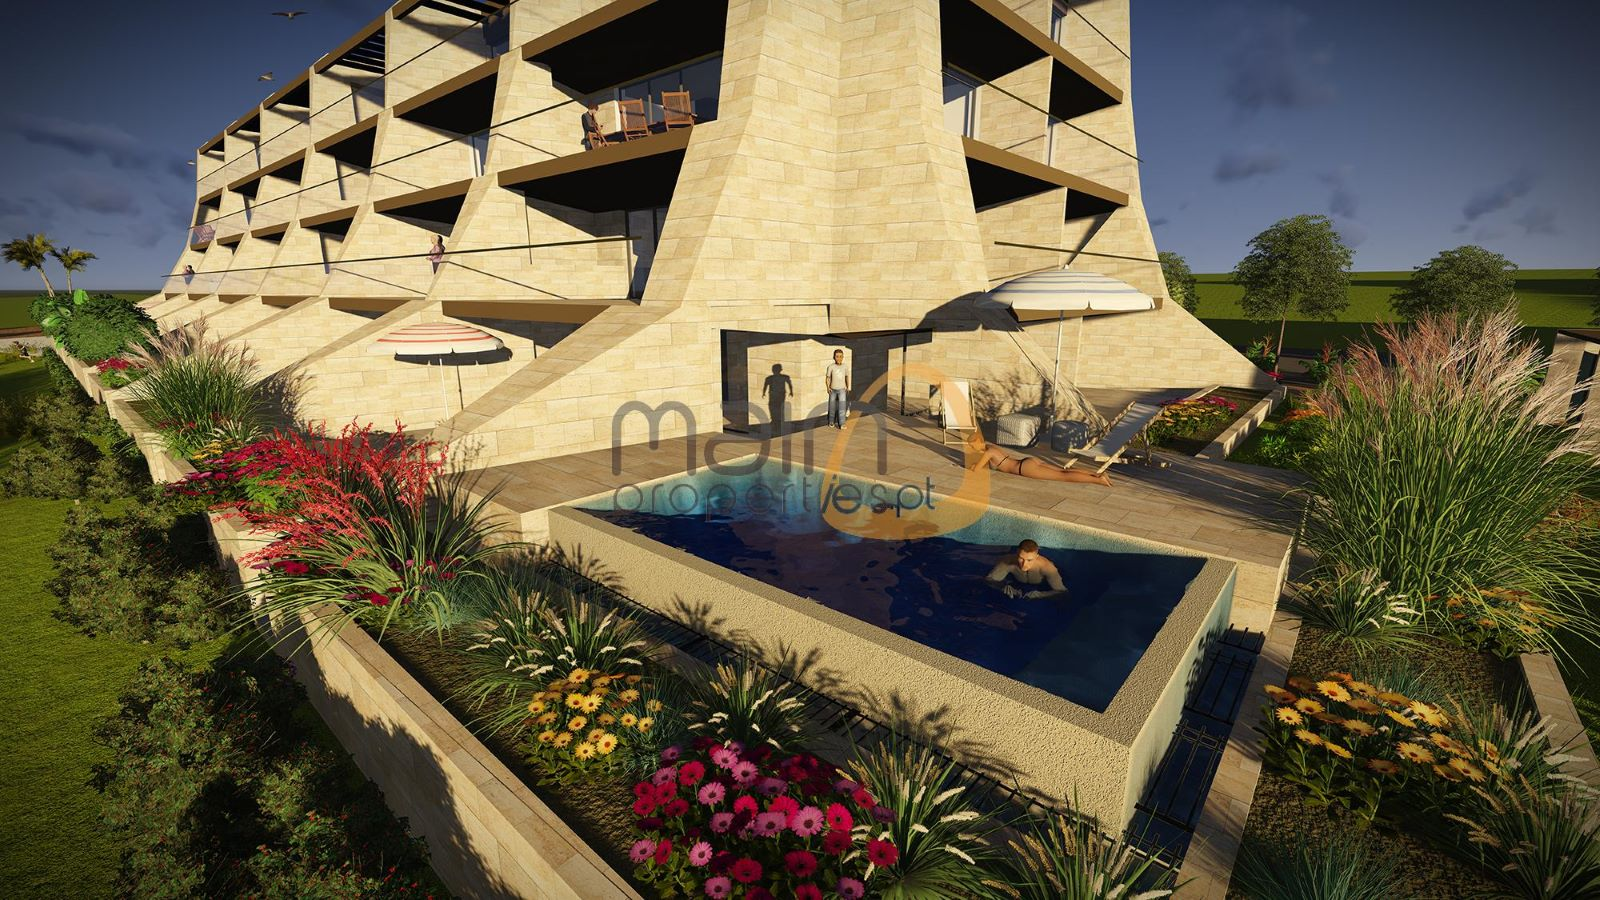 Luxury 2 bedroom apartment with private pool under construction in Vilamoura